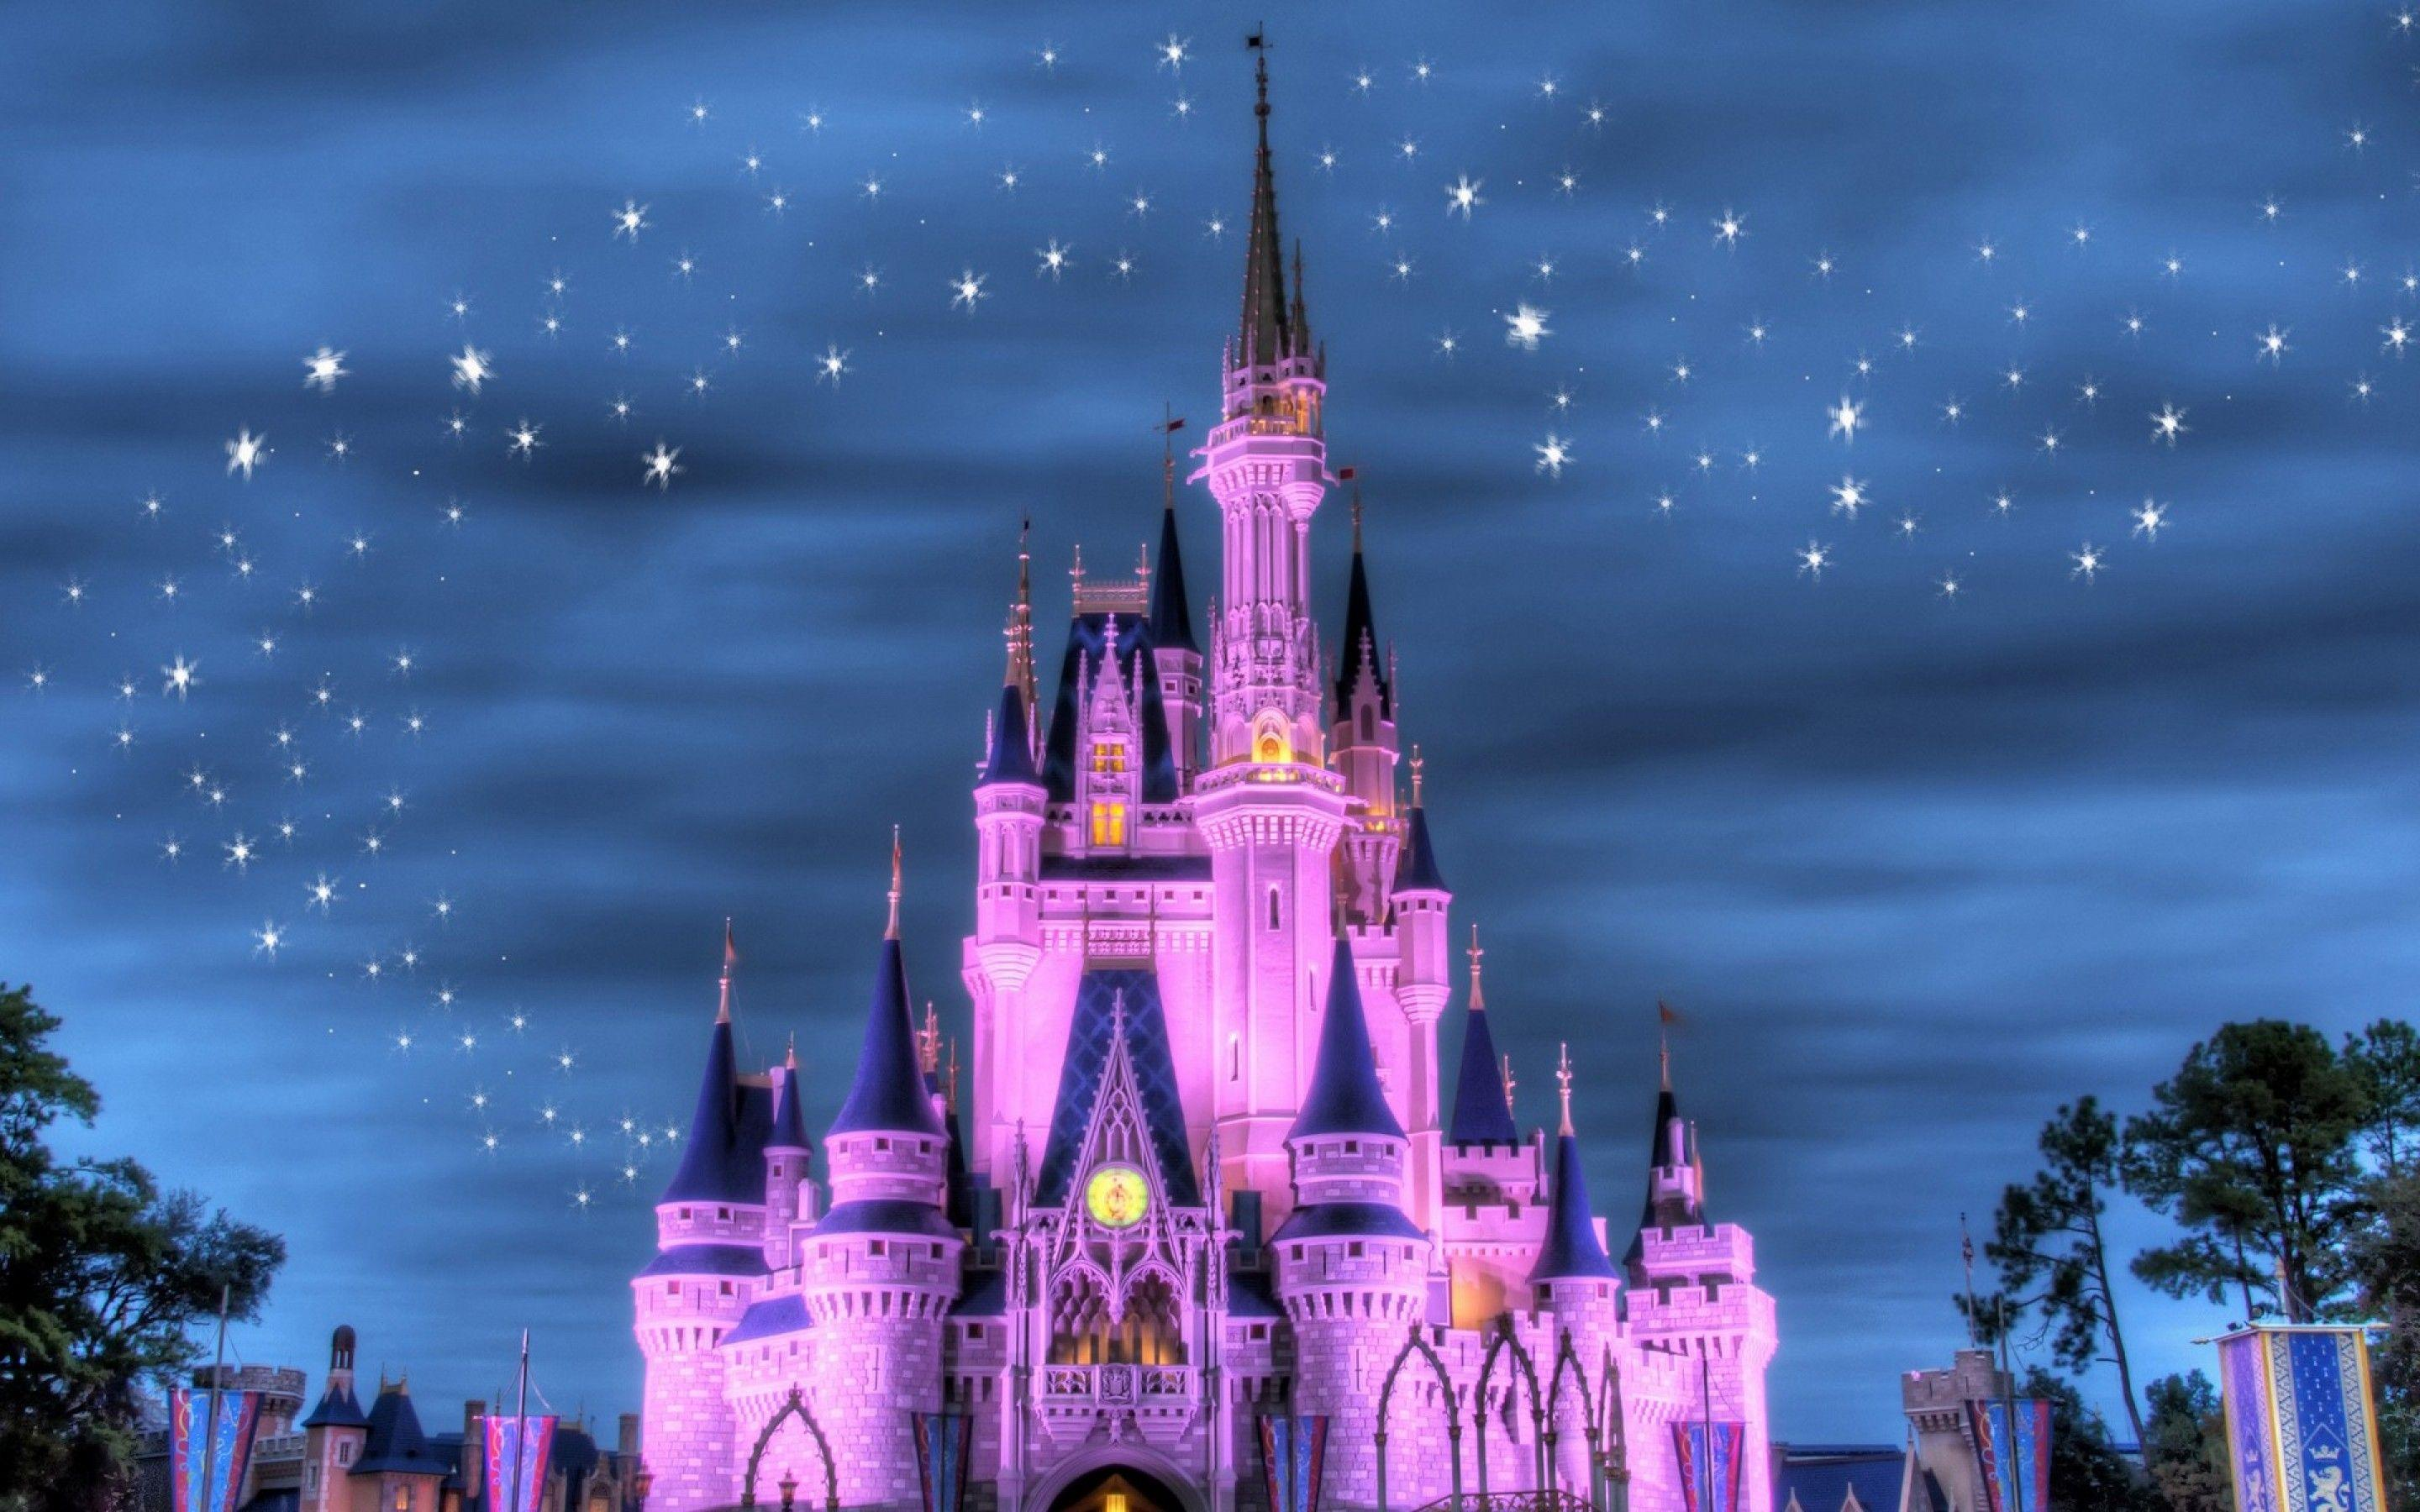 Disney powerpoint templates image collections templates example disney powerpoint templates images templates example free download disney powerpoint templates gallery templates example free download alramifo Image collections